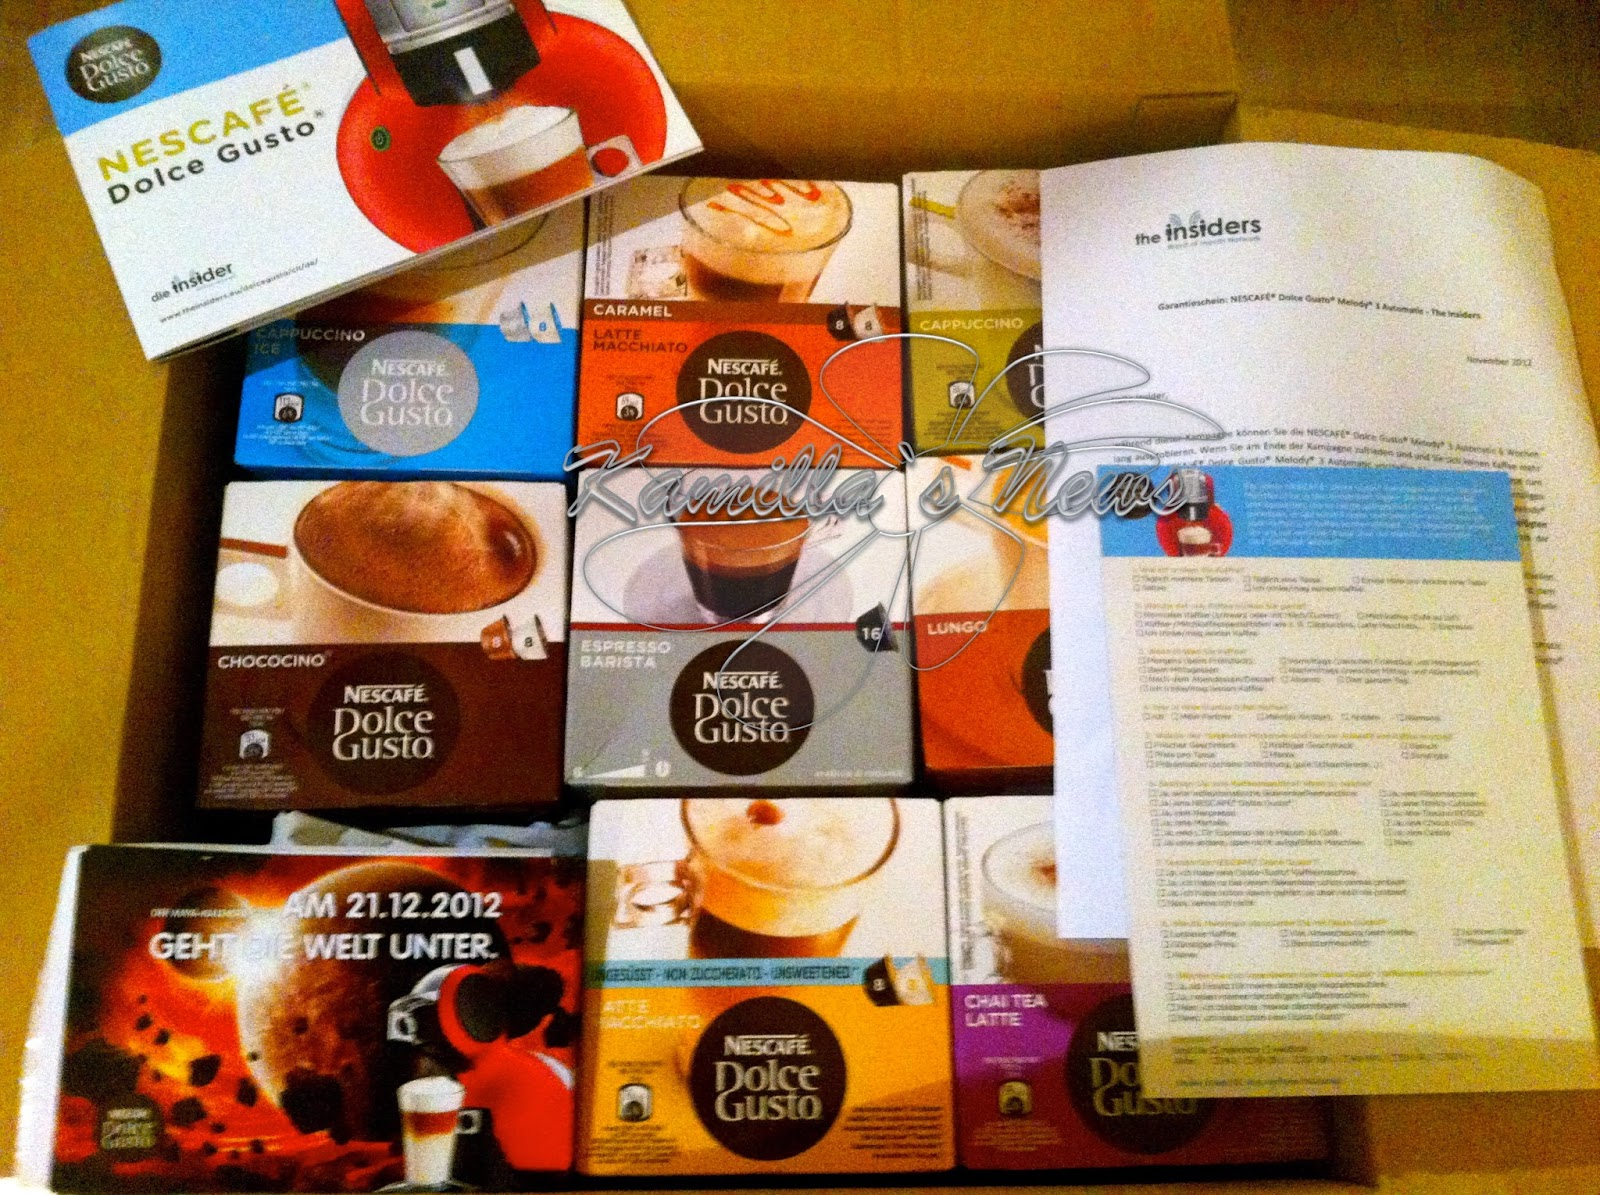 test dolce gusto